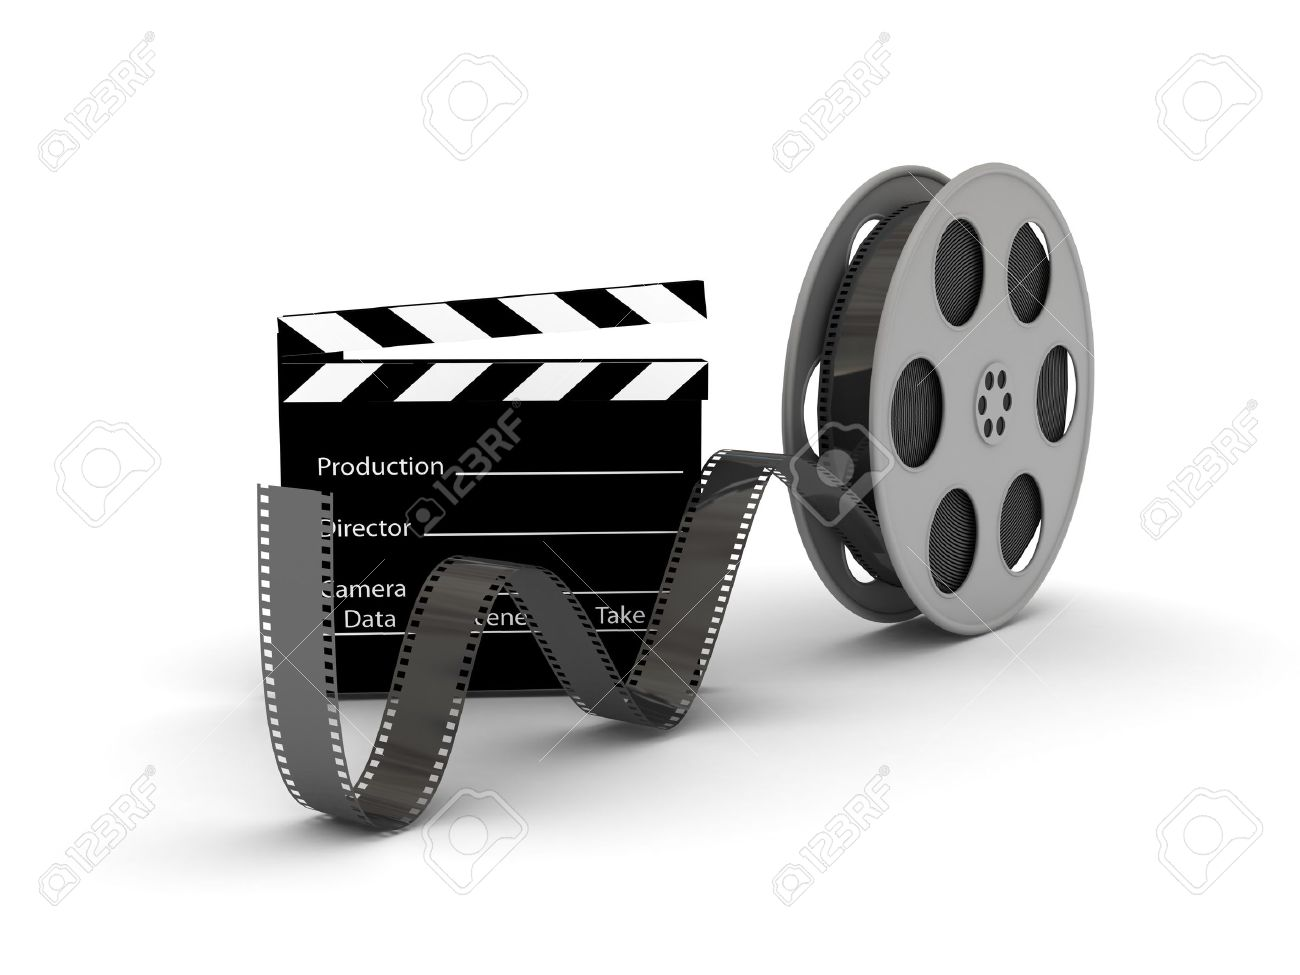 Film Slate With Movie Film Reel 3d Rendered Image Stock Photo